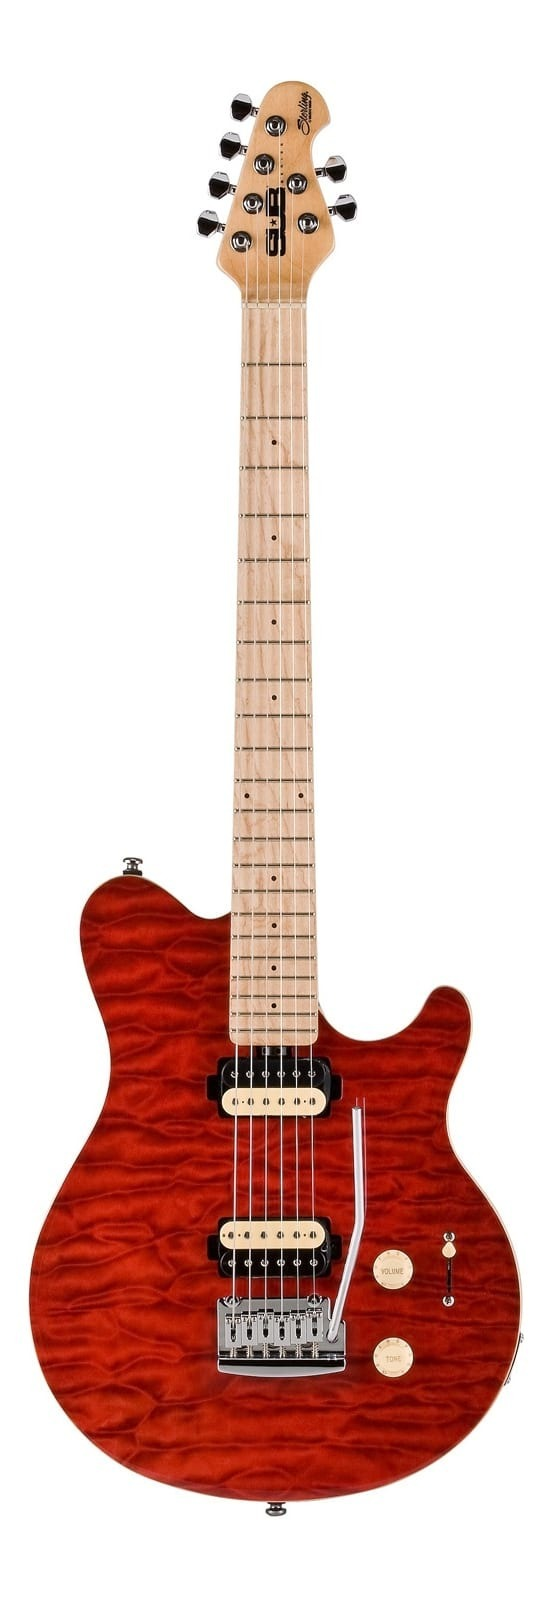 Sterling S.U.B. Series AX3 TR Electric Guitar - Red